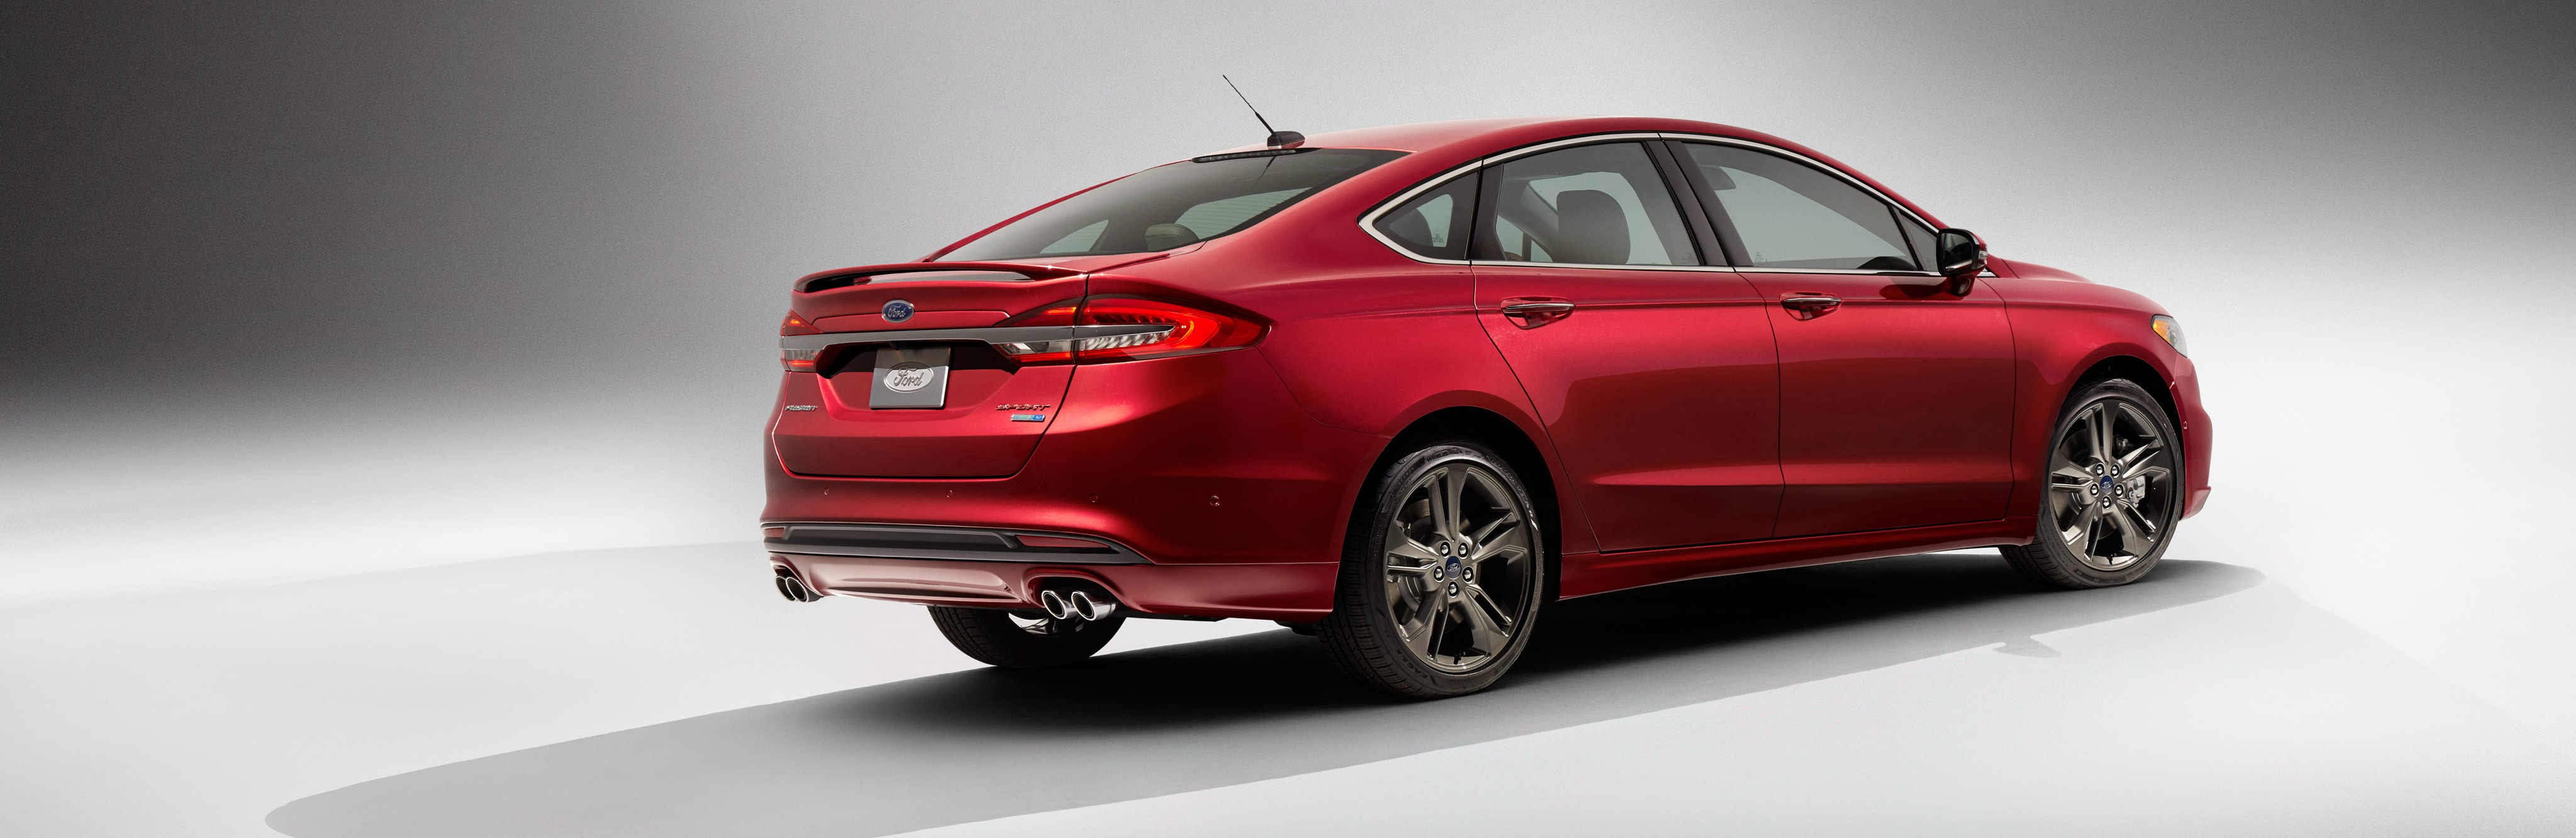 60 A 2020 Ford Mondeo Release Date and Concept